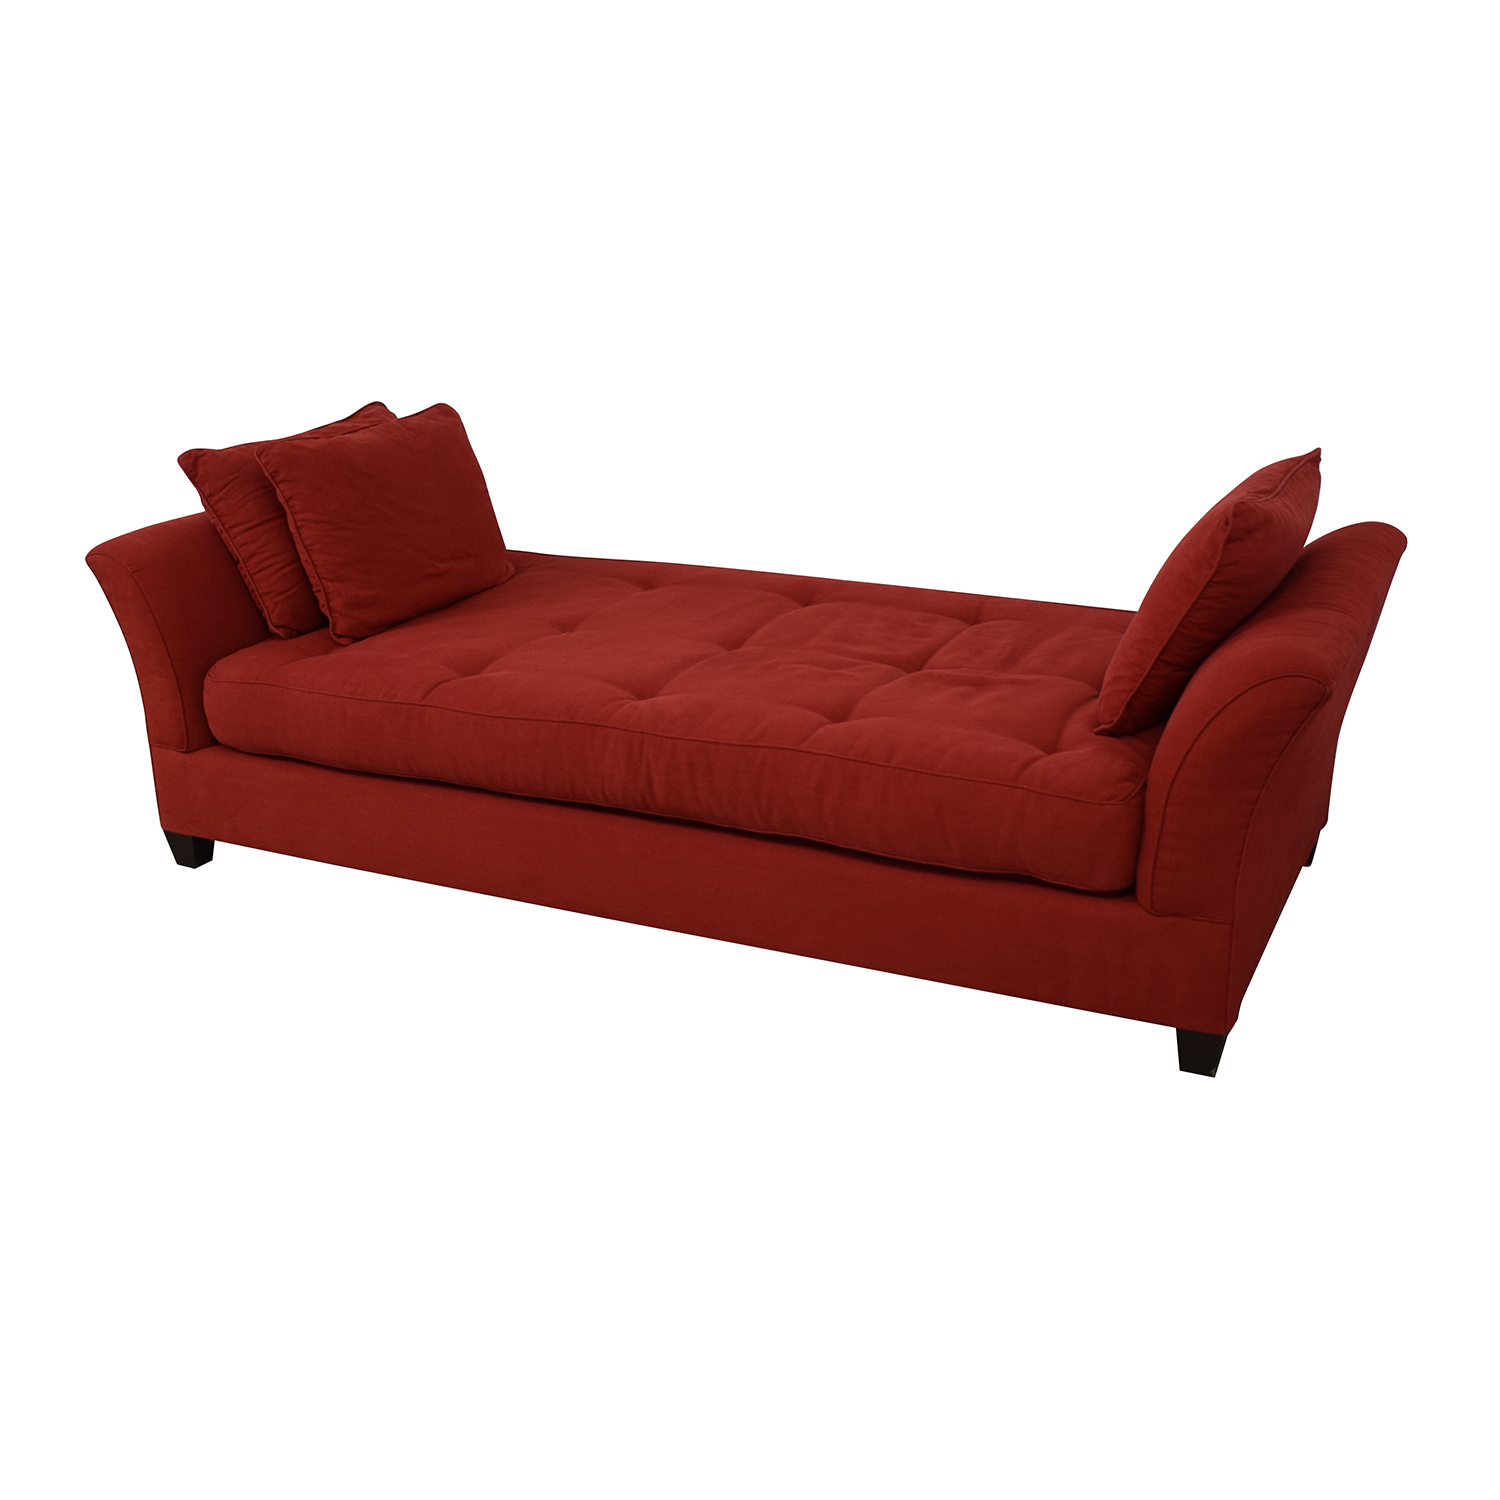 Custom Modern Daybed RED